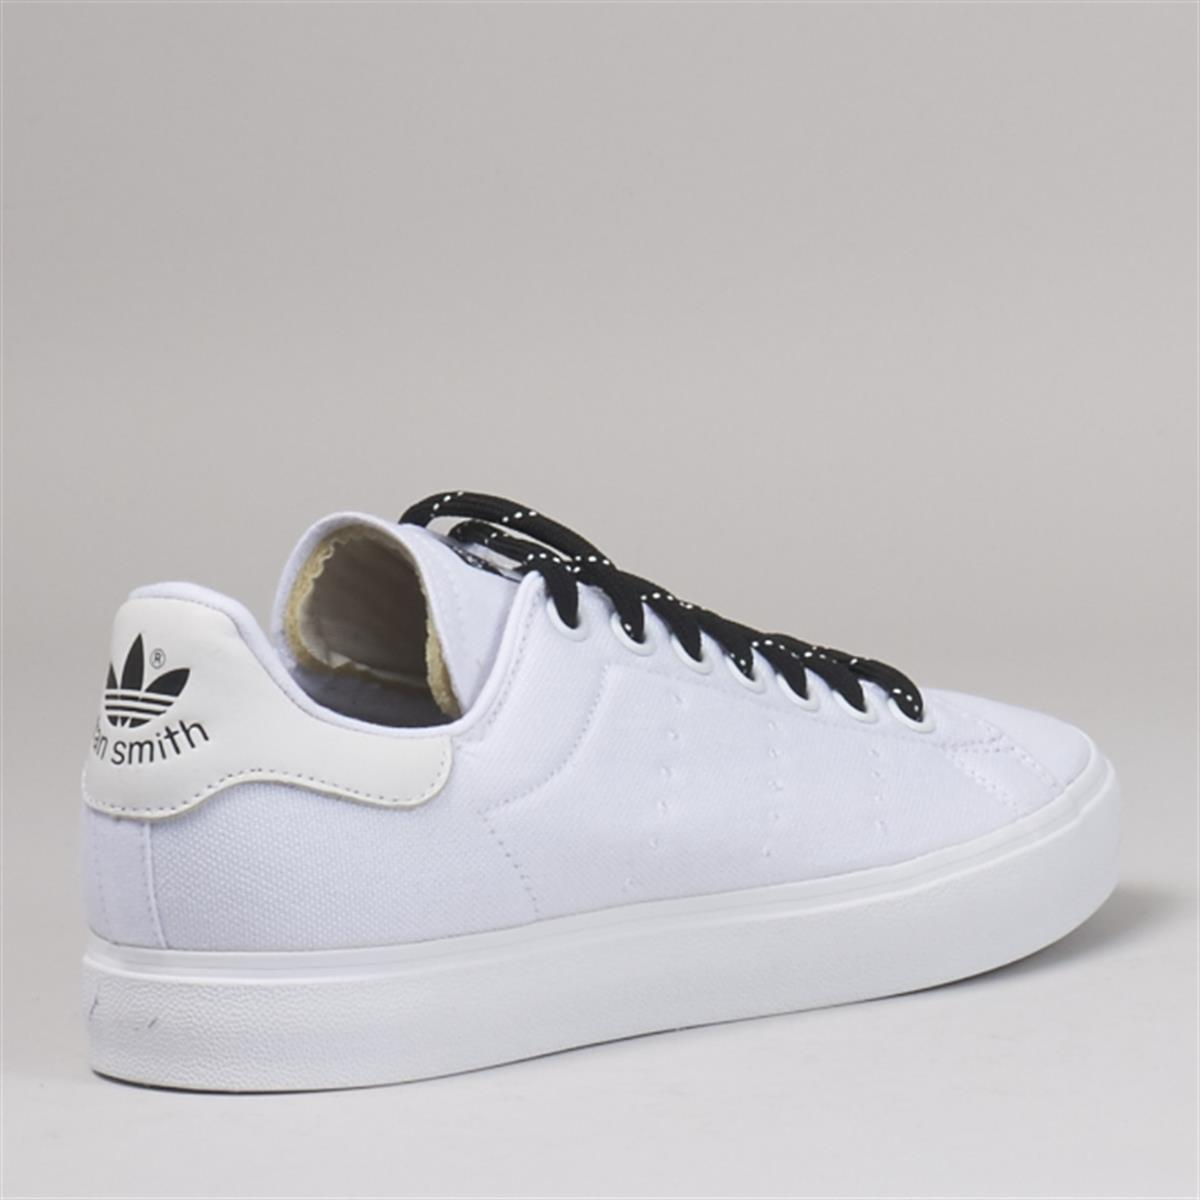 2adidas stans smith in tela